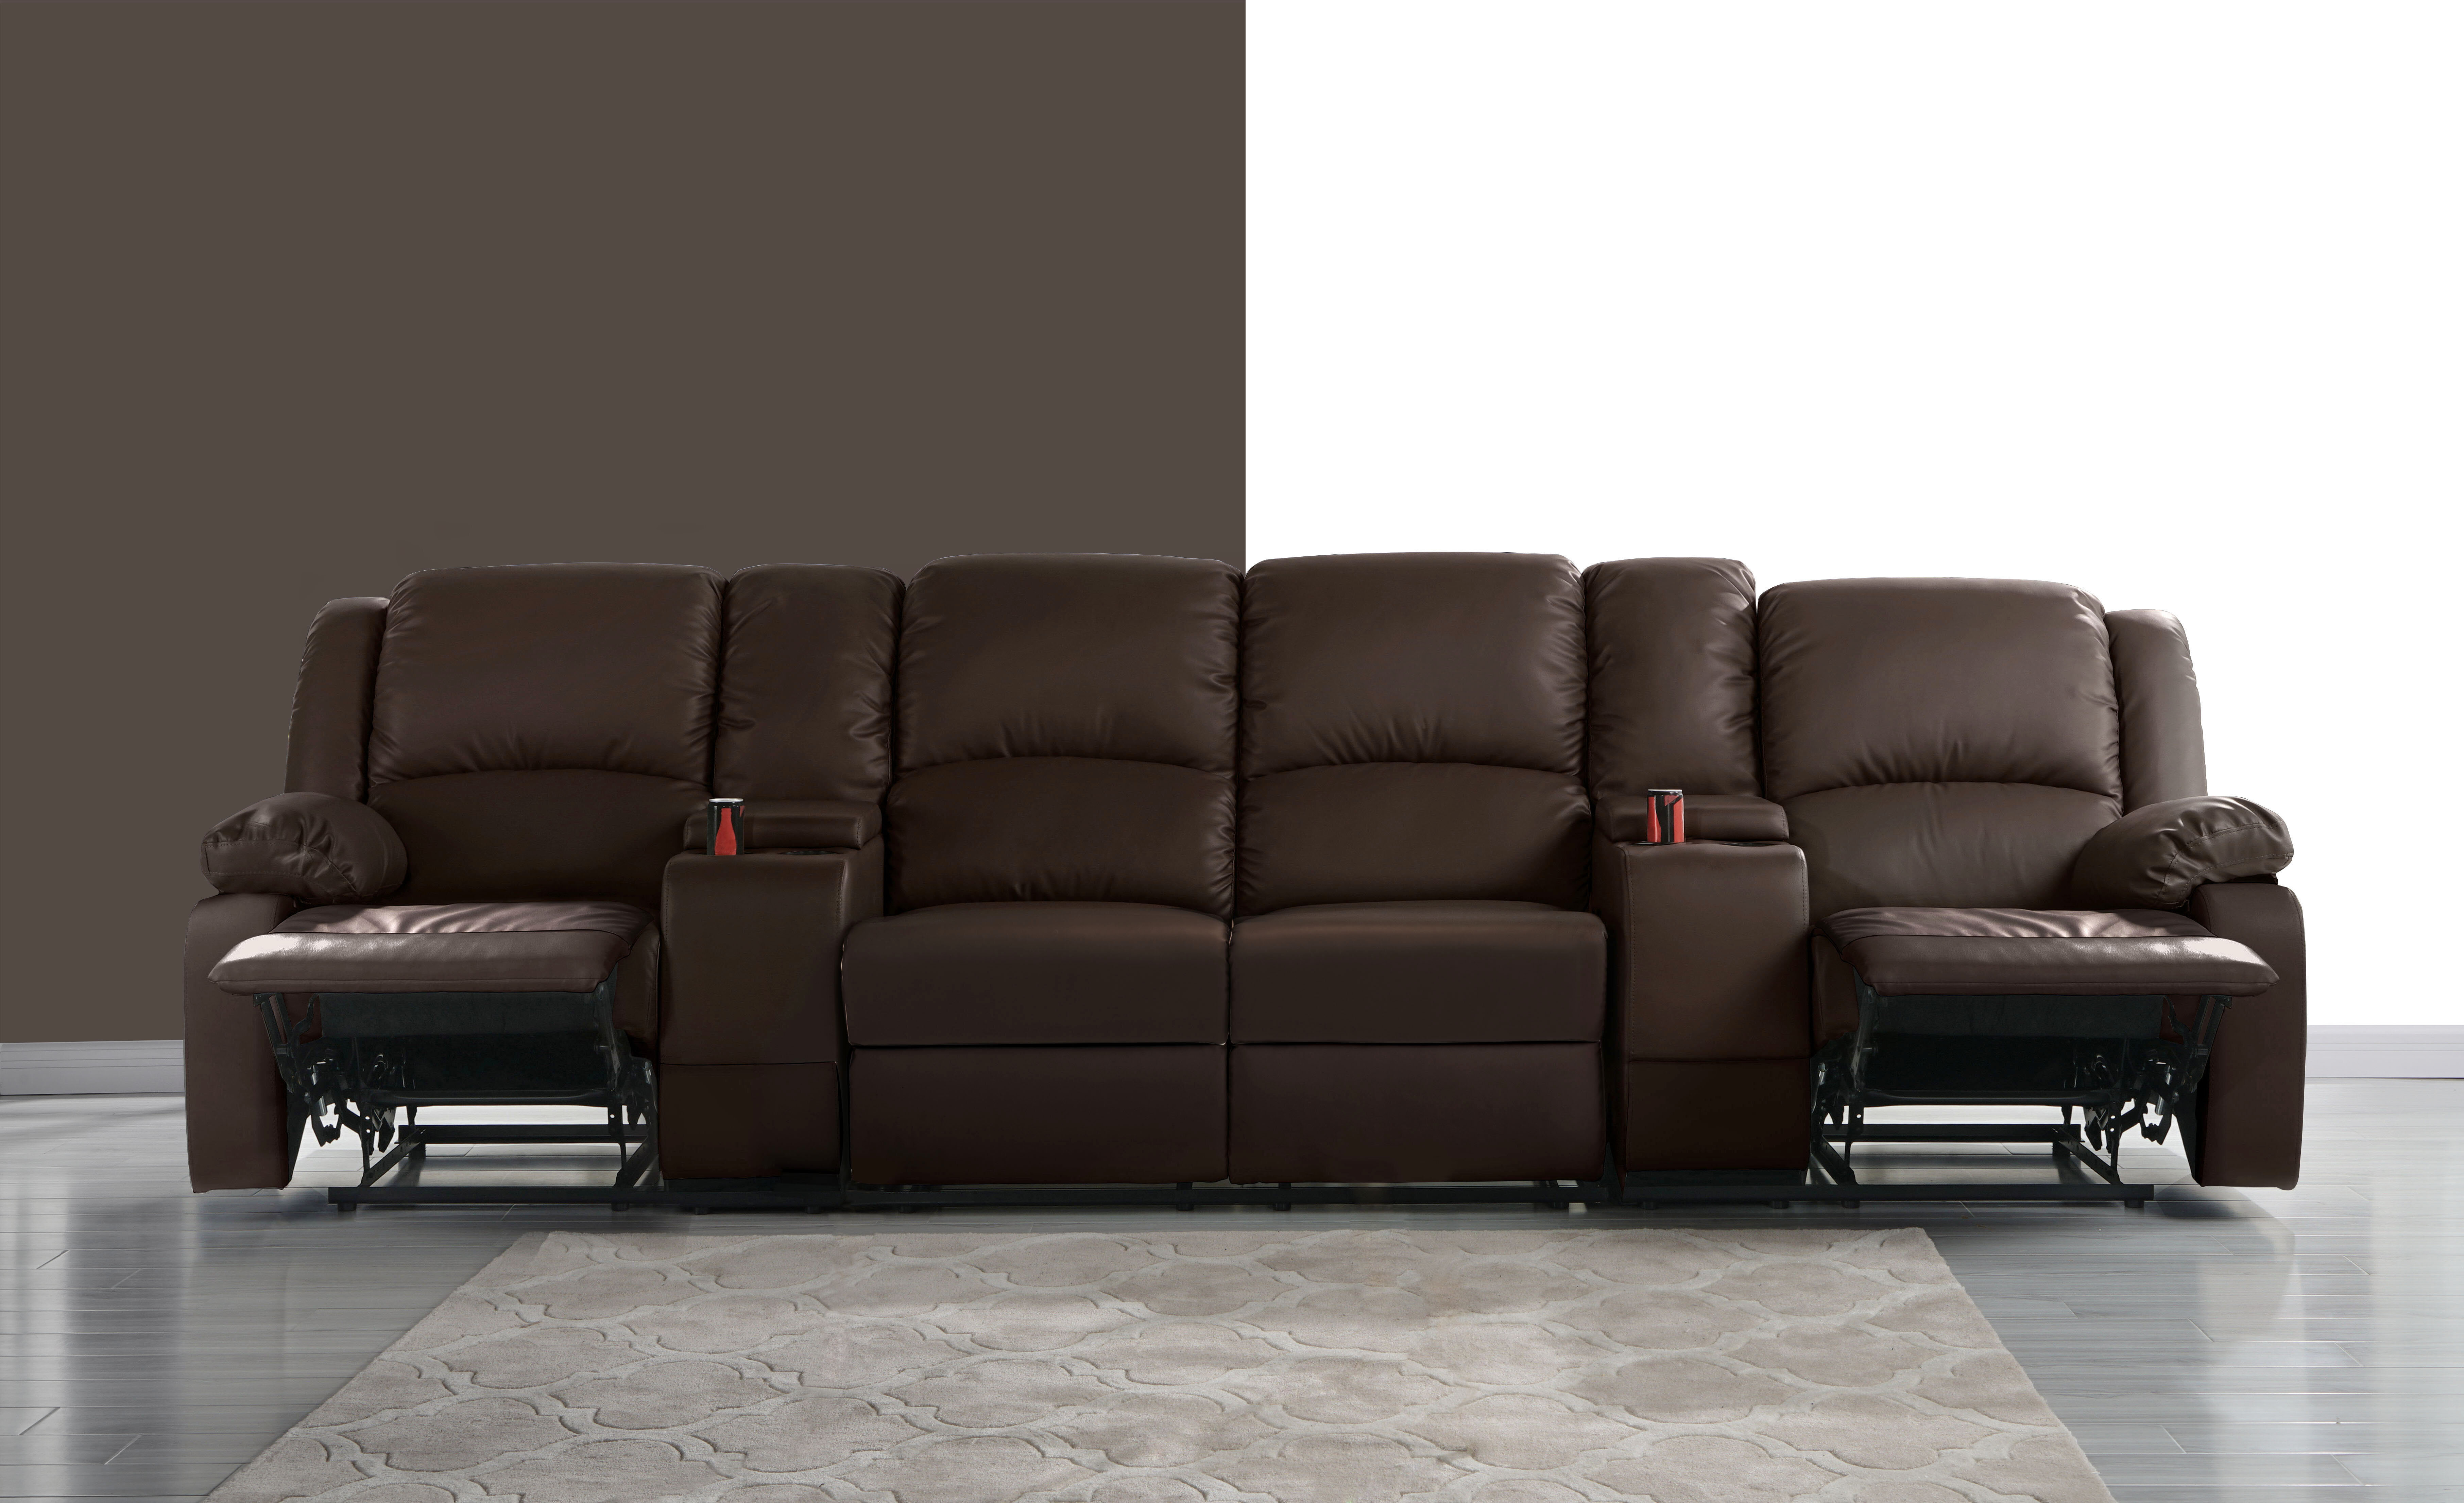 Merveilleux Red Barrel Studio 4 Seat Home Theater Sofa With Cup Holder | Wayfair